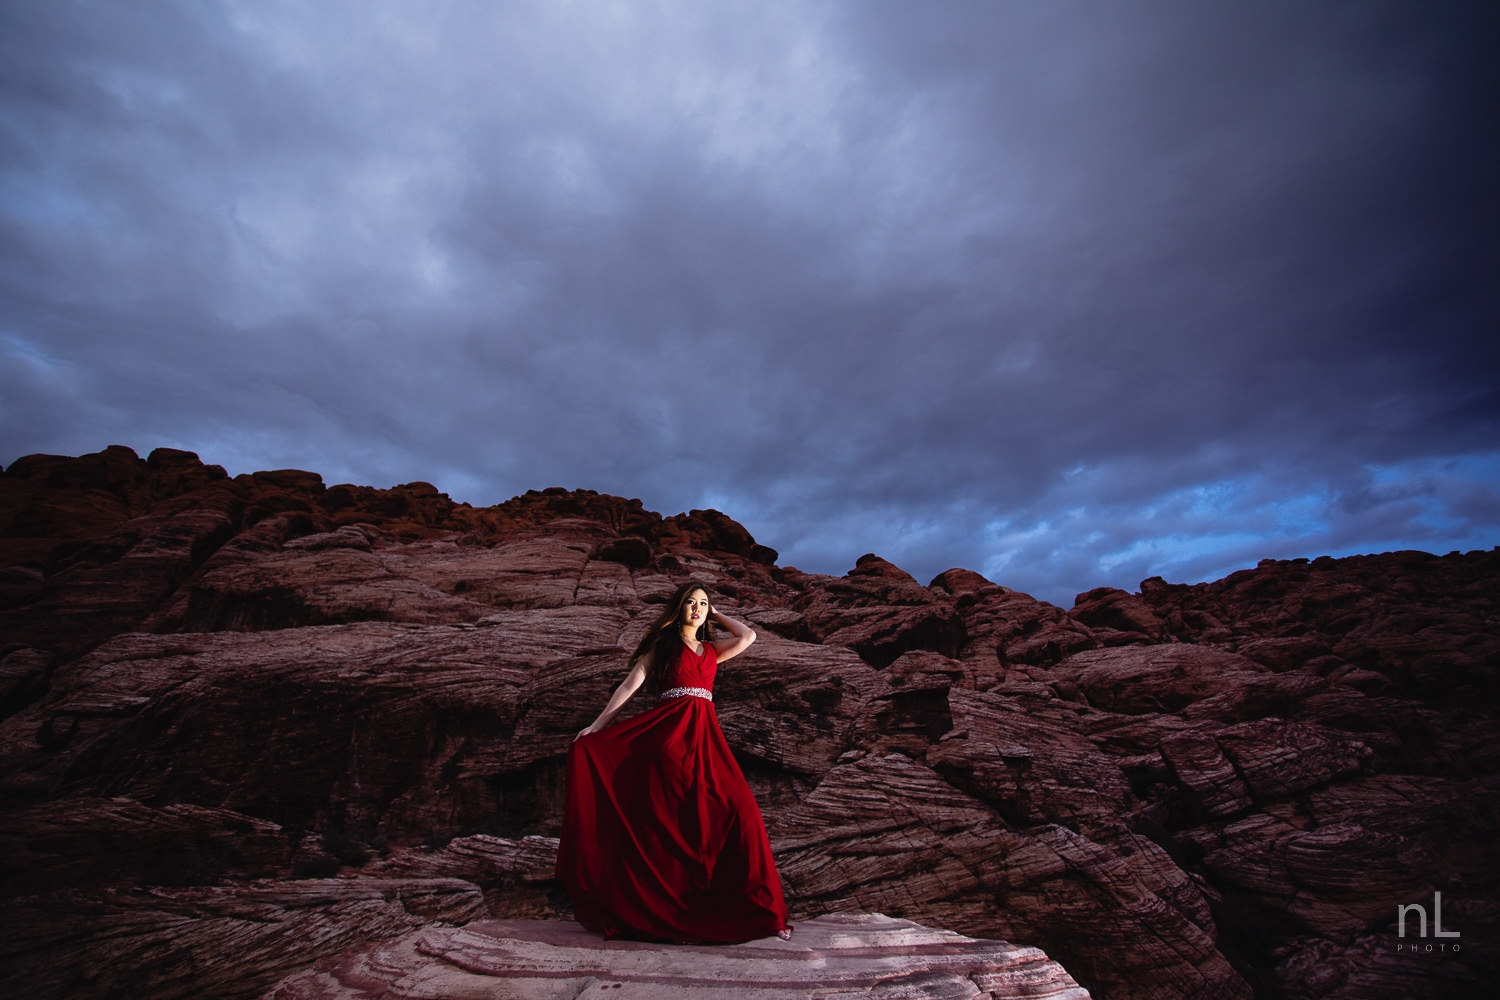 Epic environmental portrait of Asian model in long, flowing, red dress, standing on in Red Rock Canyon during dusk and stormy clouds in background.